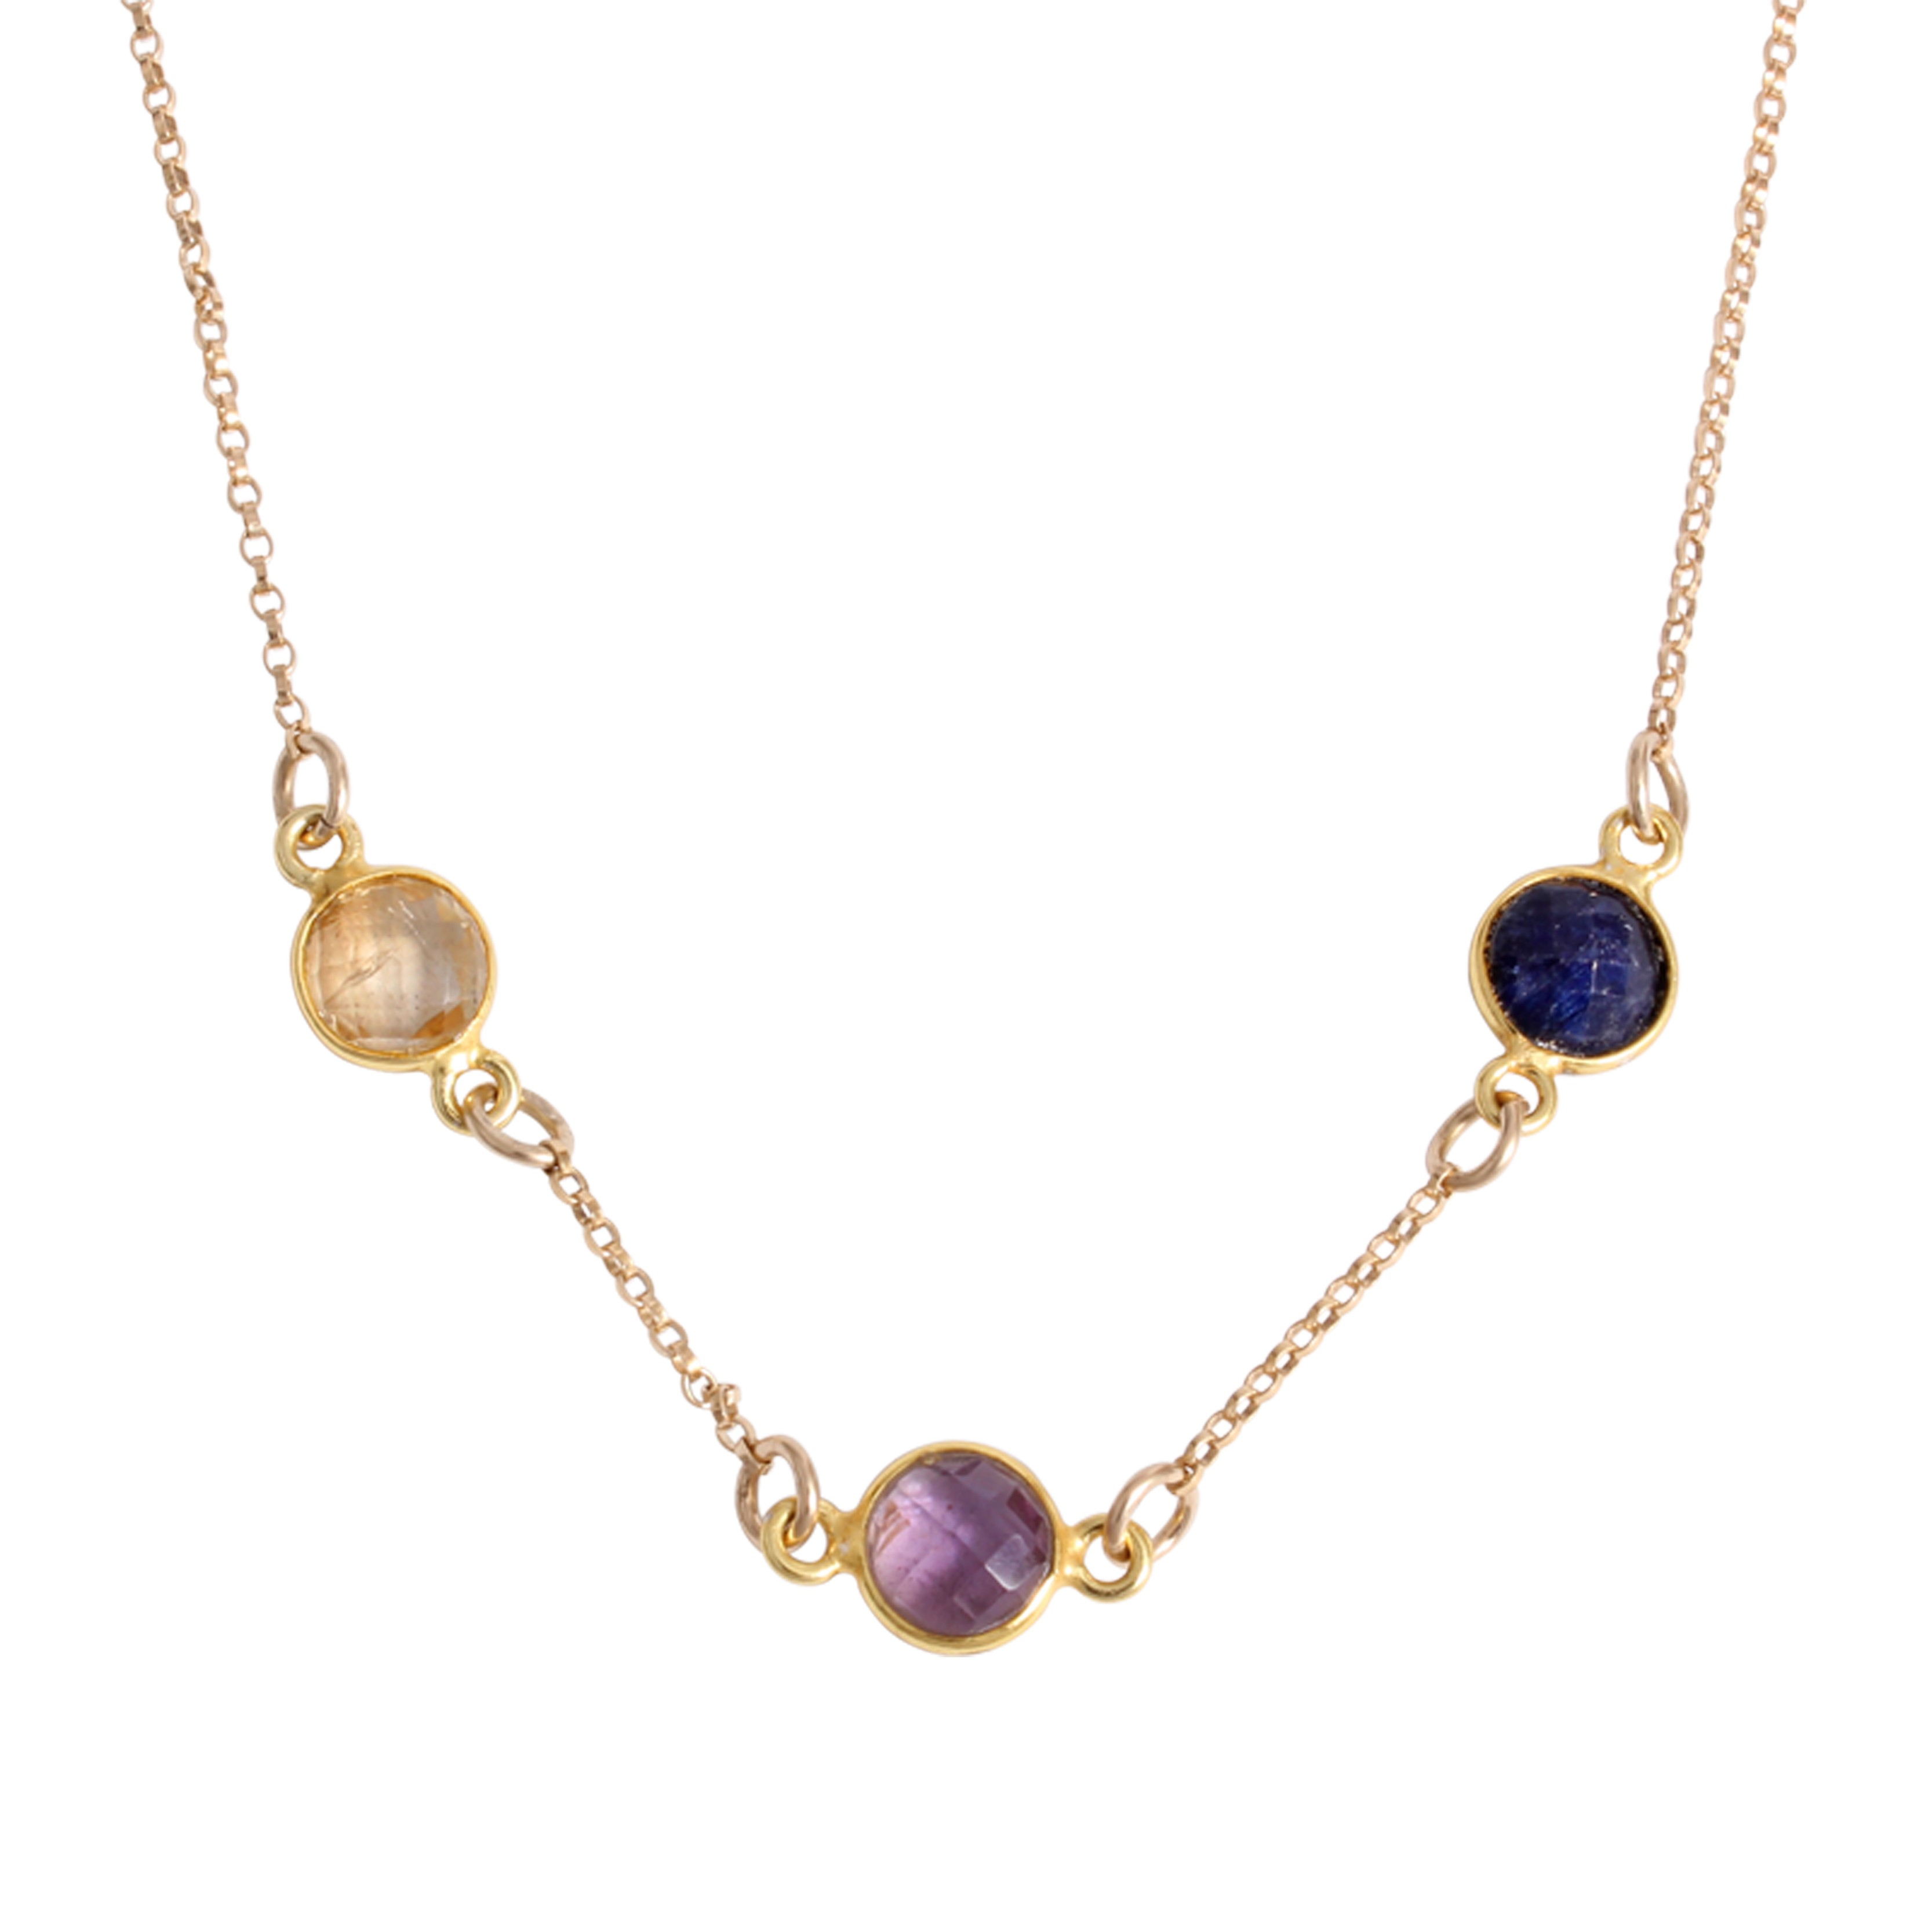 Treasure Jewelry - Official Site Fashion jewelry 21 necklaces